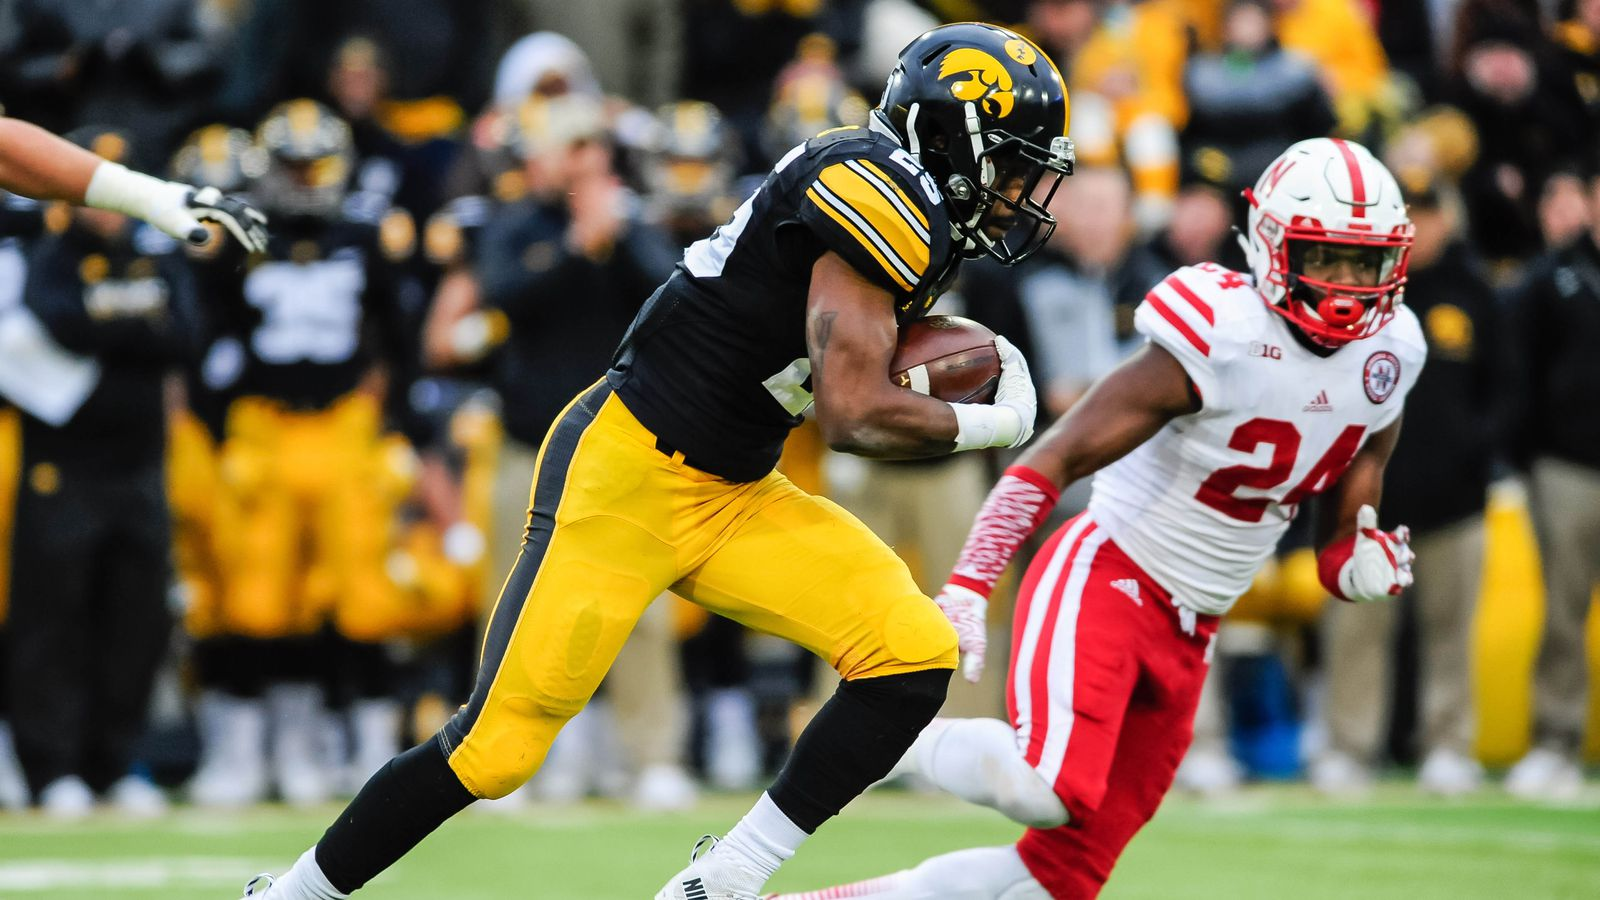 Image result for Iowa beats Nebraska 2016 football